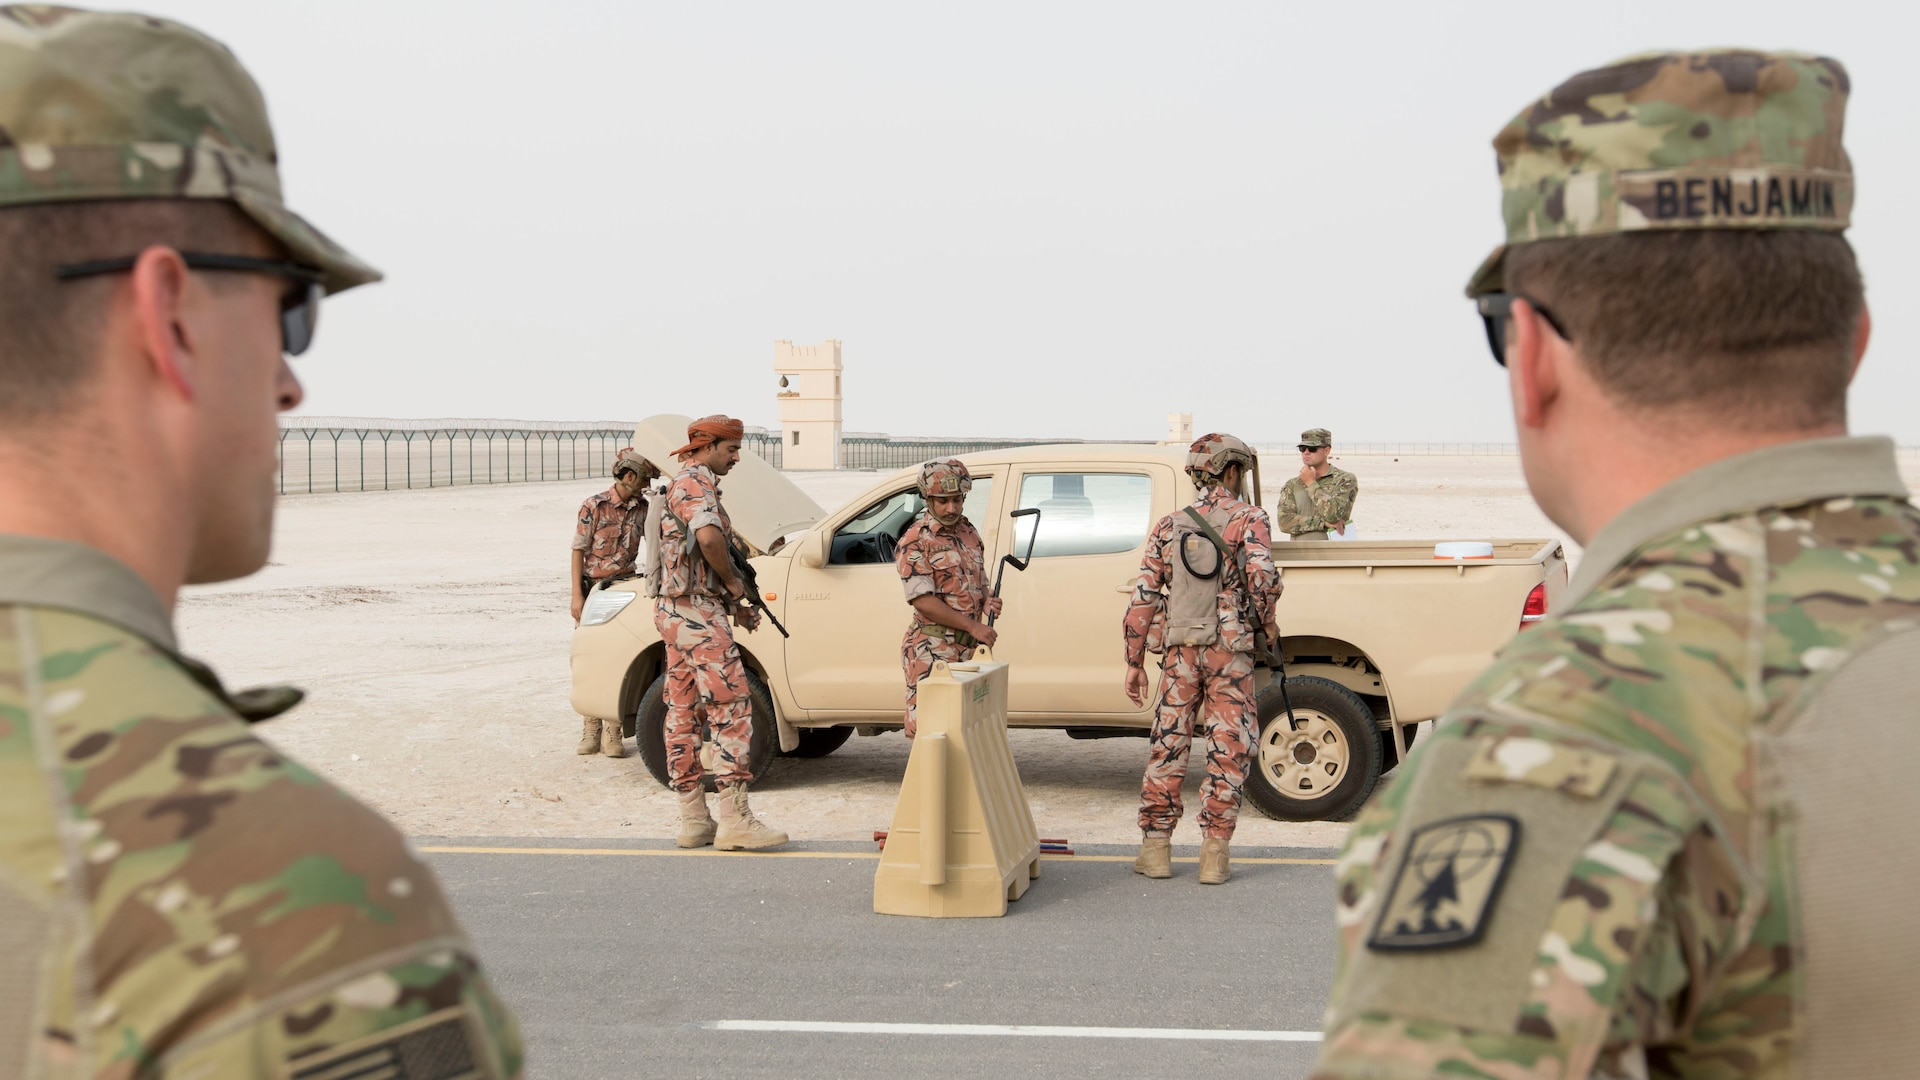 U.S. Army Soldiers with the 157th Military Engagement Team, Wisconsin Army National Guard, attached to U.S. Army Central, observe soldiers from the Royal Army of Oman's Border Guard Brigade performing a vehicle search as part of a practical exercise in which soldiers from each country demonstrated their preferred method of operating a vehicle control point in Haima, Oman, Aug. 8, 2018. The collaborative exercise increased interoperability between the U.S. Army and Omani Army by creating an opportunity for soldiers from each country to share best practices in border security. (U.S. Army photo by Spc. Adam Parent)